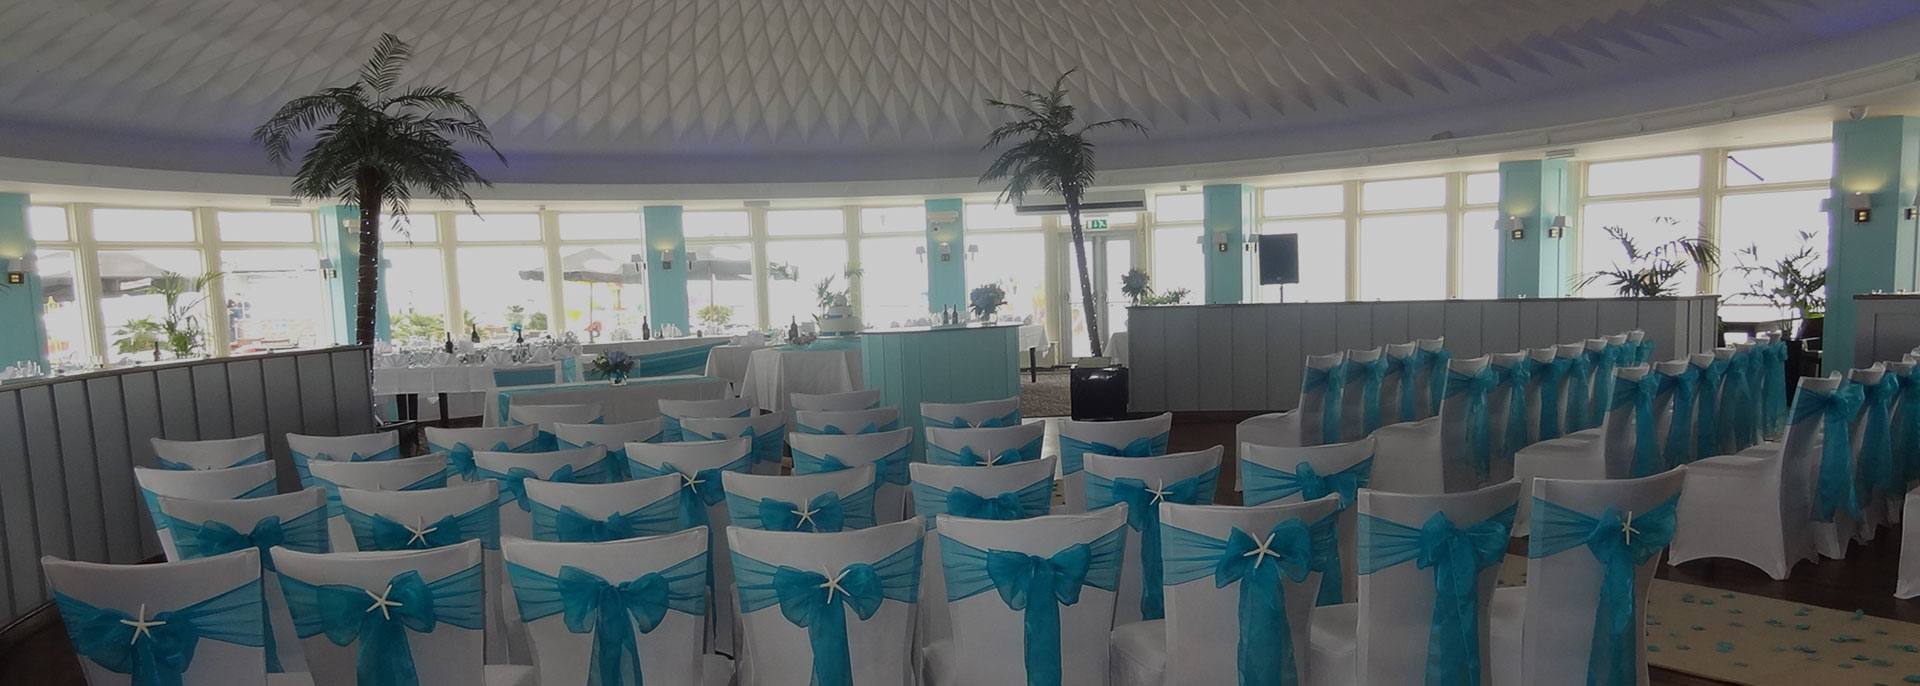 Wedding Ceremony Venues in Bournemouth